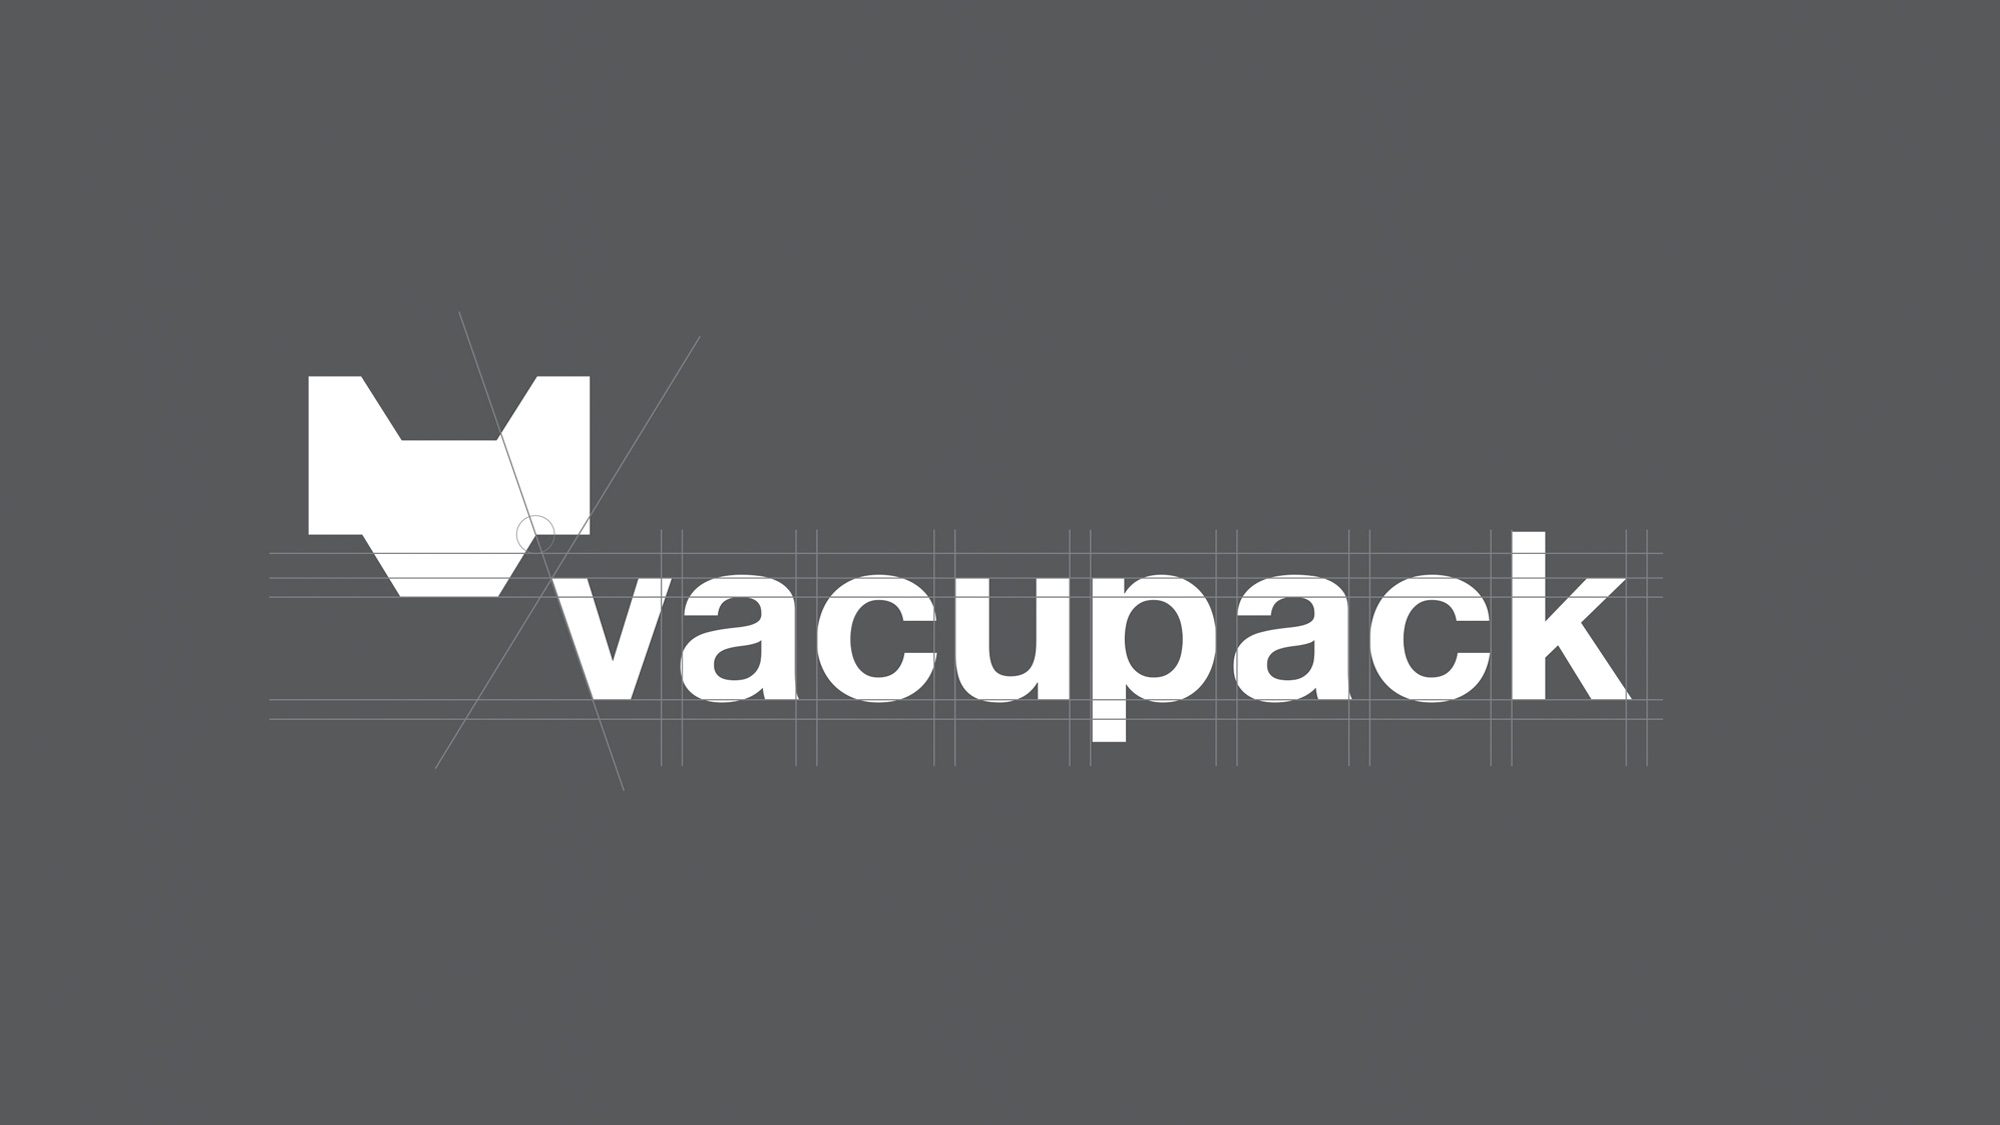 Vacupack logo with grey grids